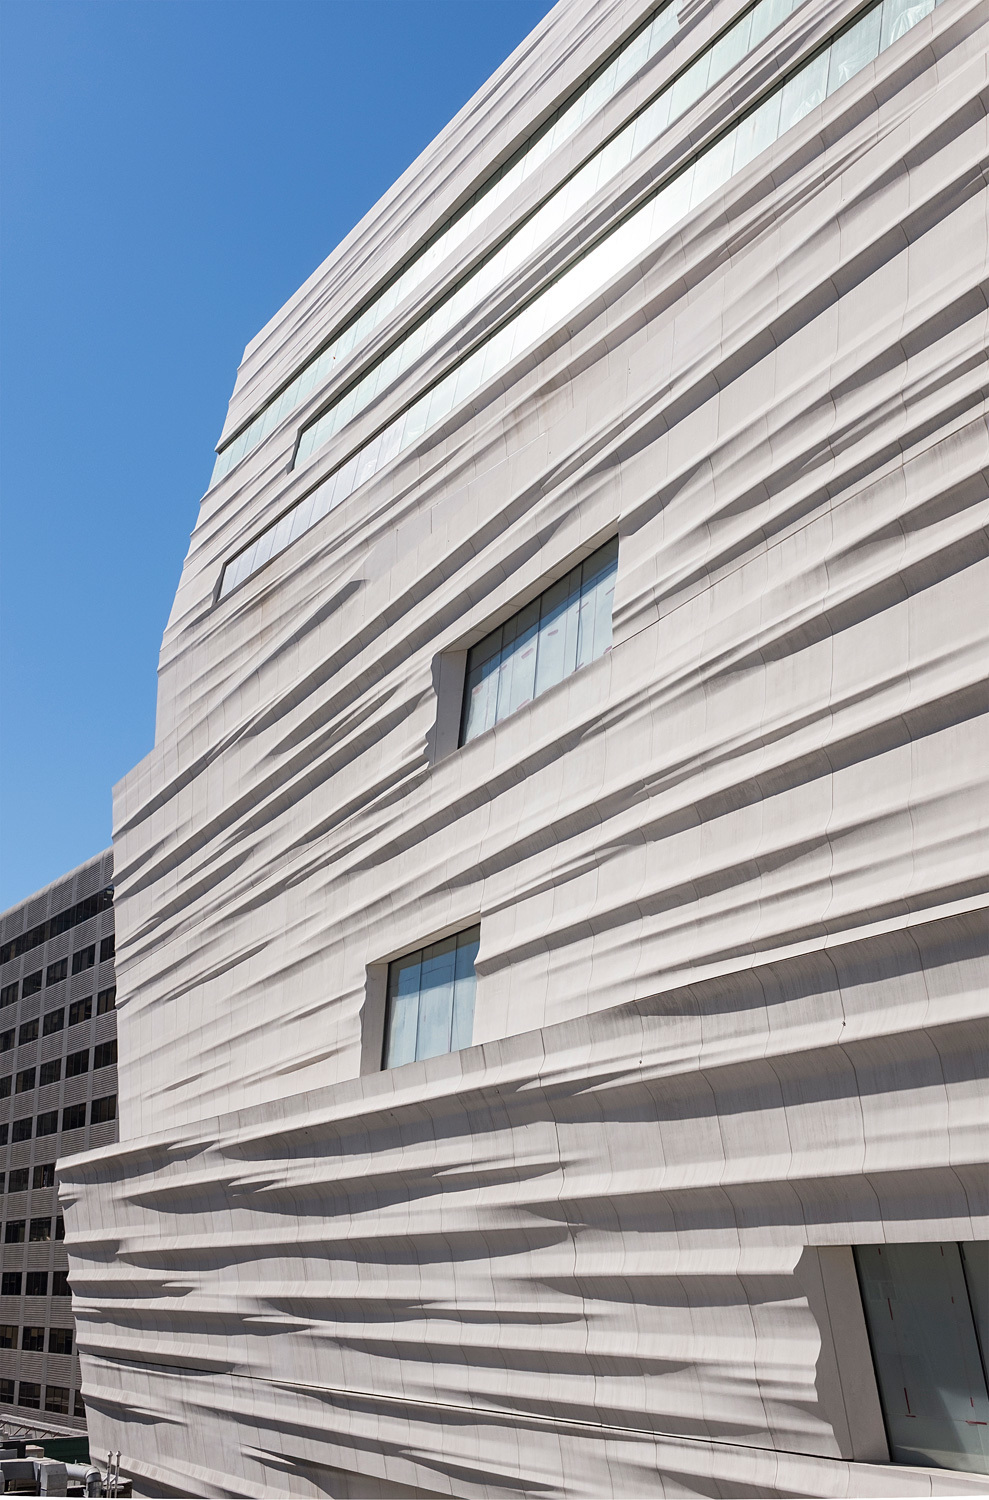 Sn 248 Hetta S Expanded Sfmoma Is 235 000 Square Feet Of